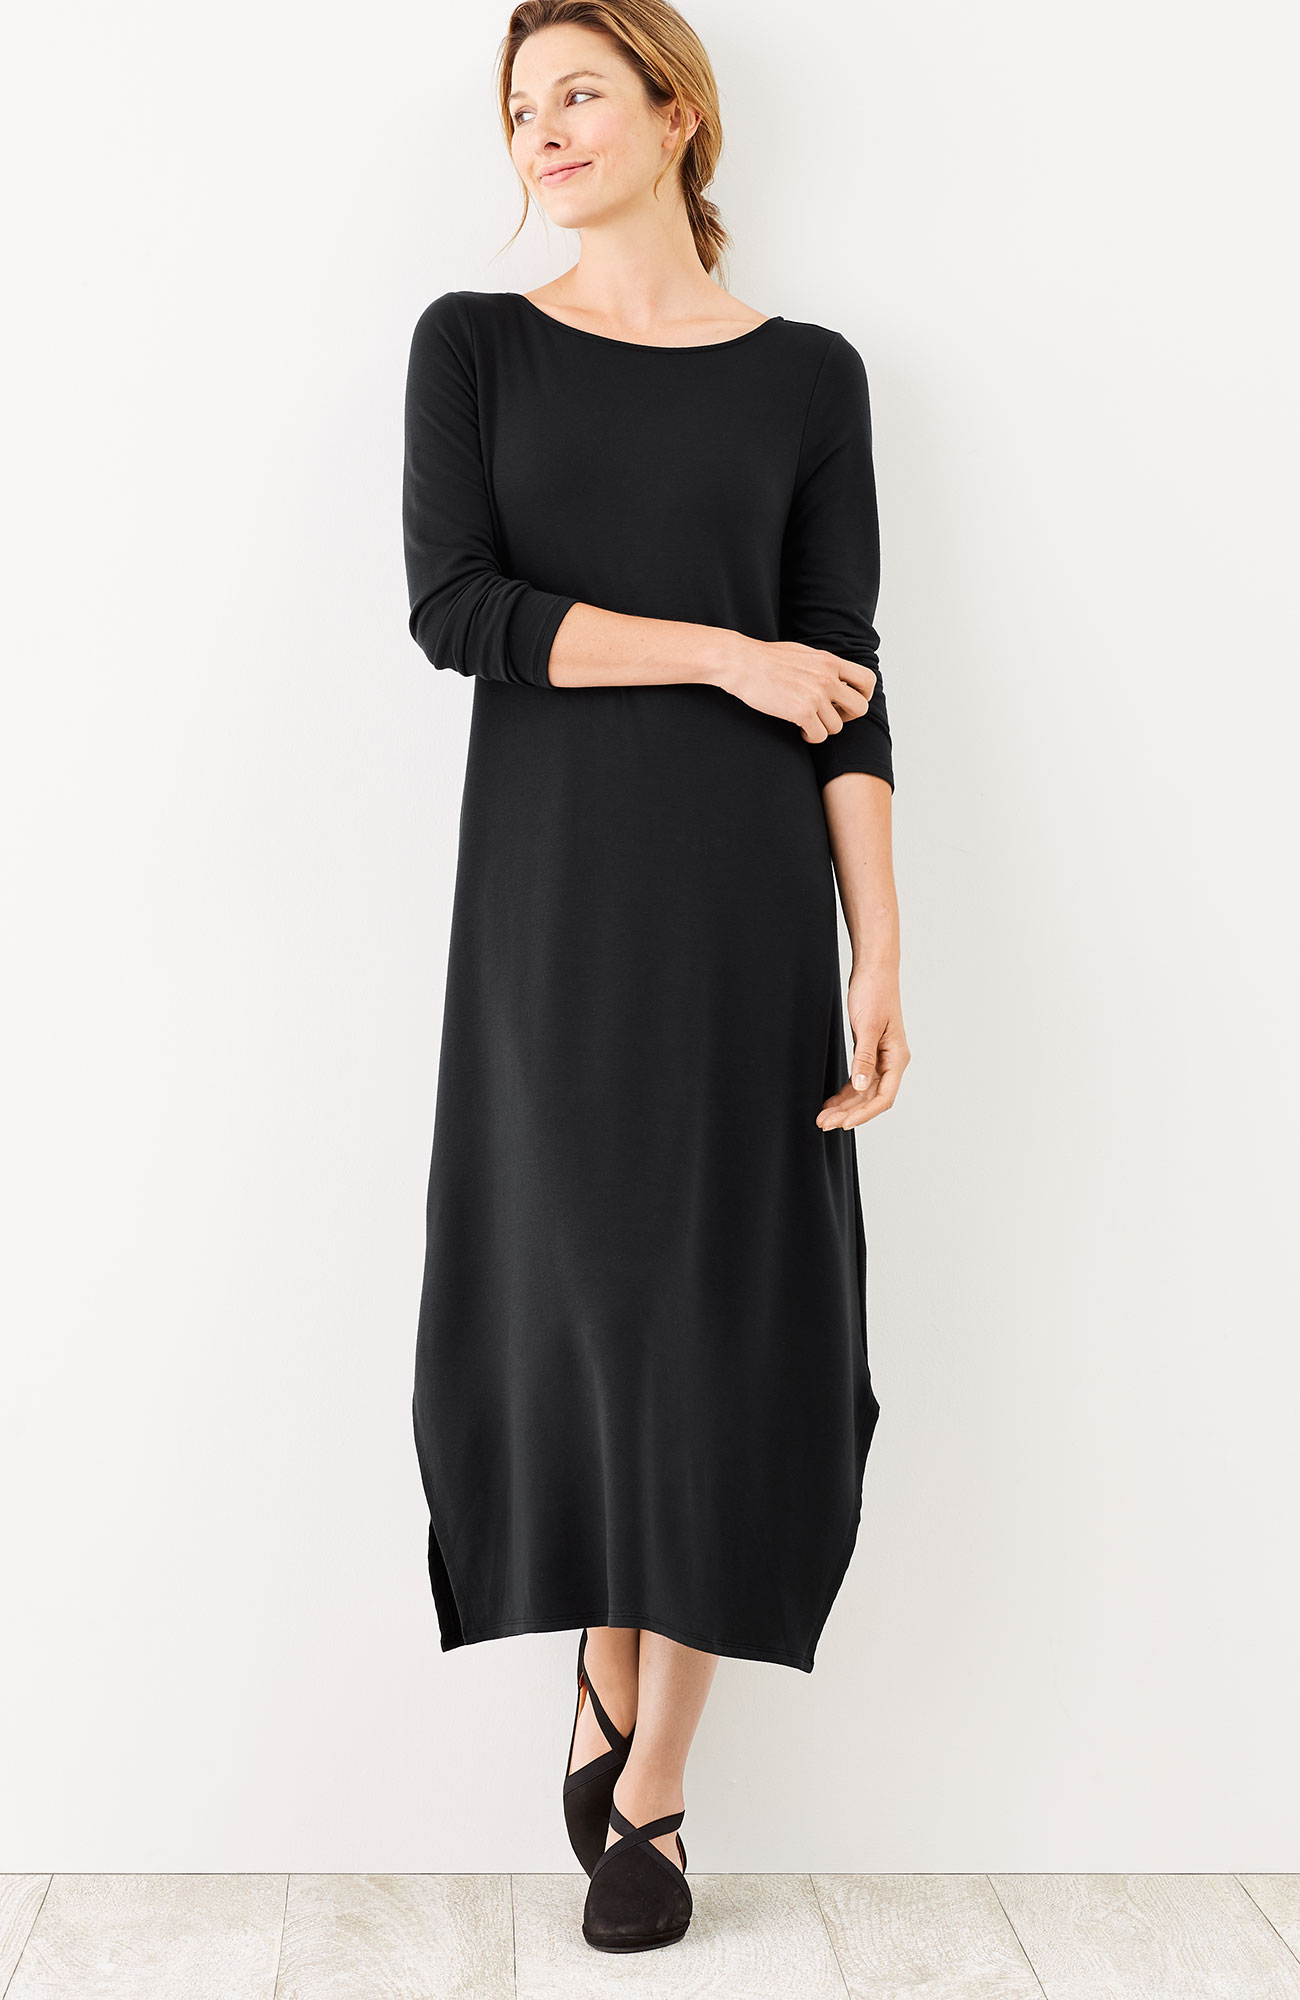 Pure Jill Luxe Tencel® dipped-hem dress